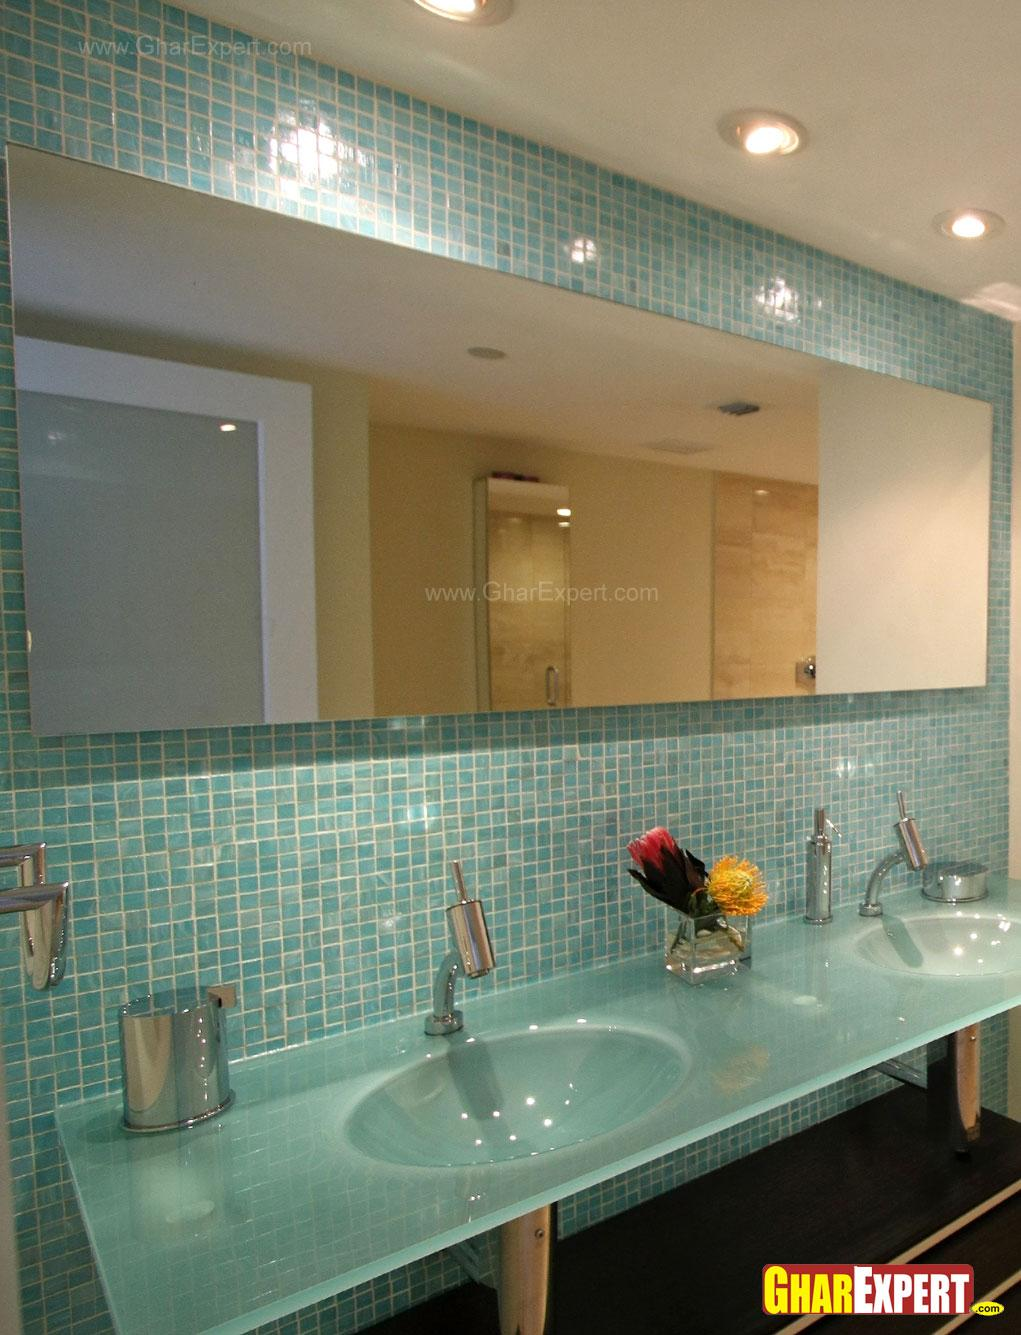 Bathroom tiles in blue color w....